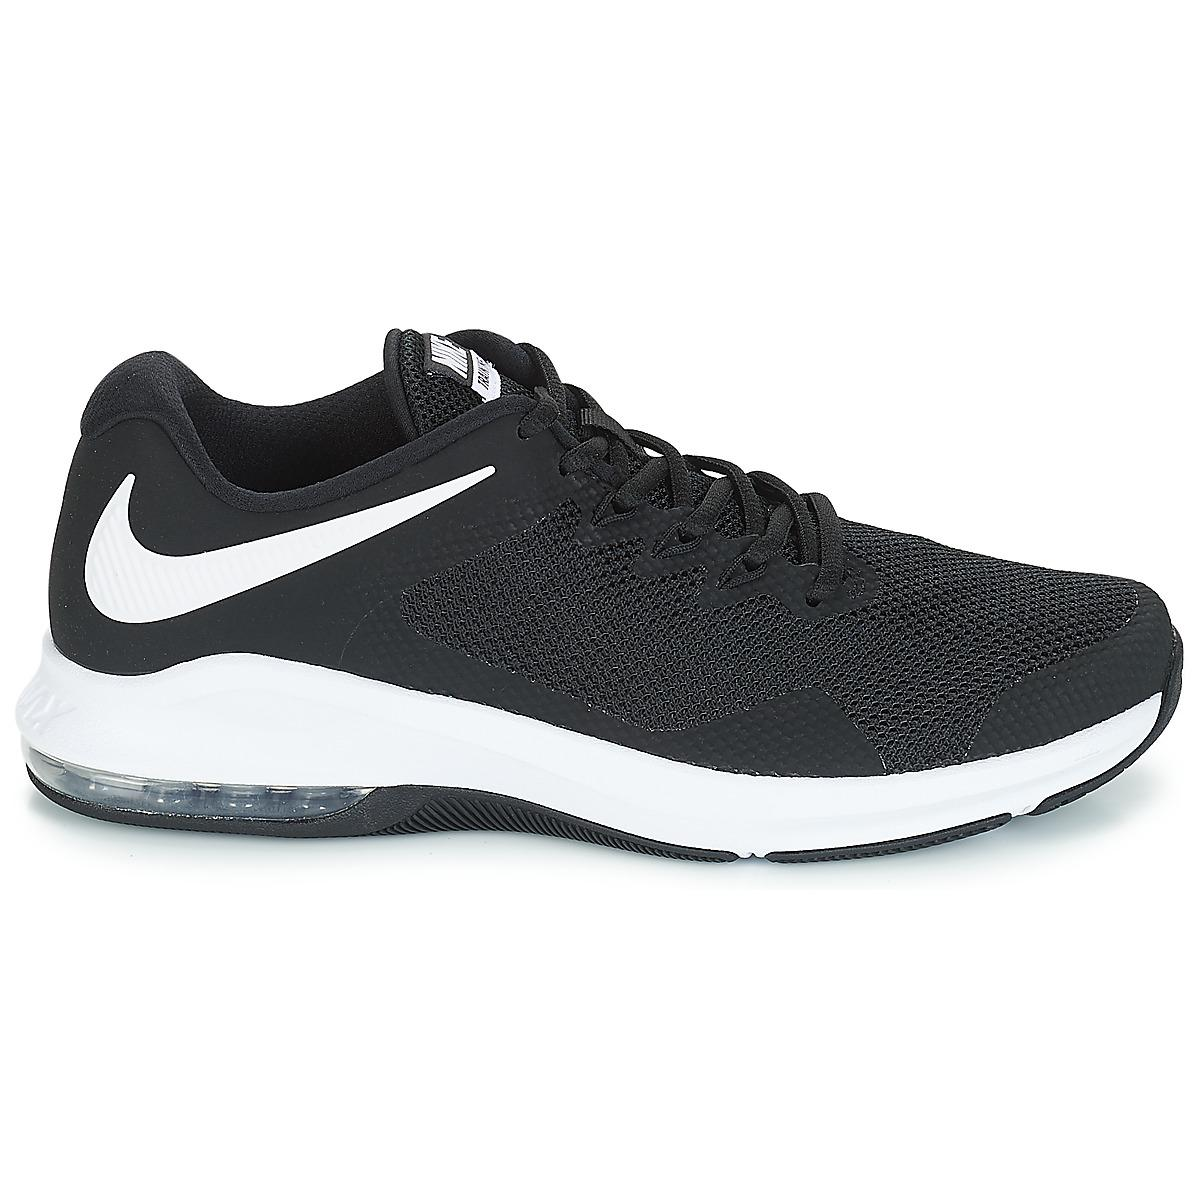 be0c6ced9be693 Nike - Air Max Alpha Trainer Men s Trainers In Black for Men - Lyst. View  fullscreen